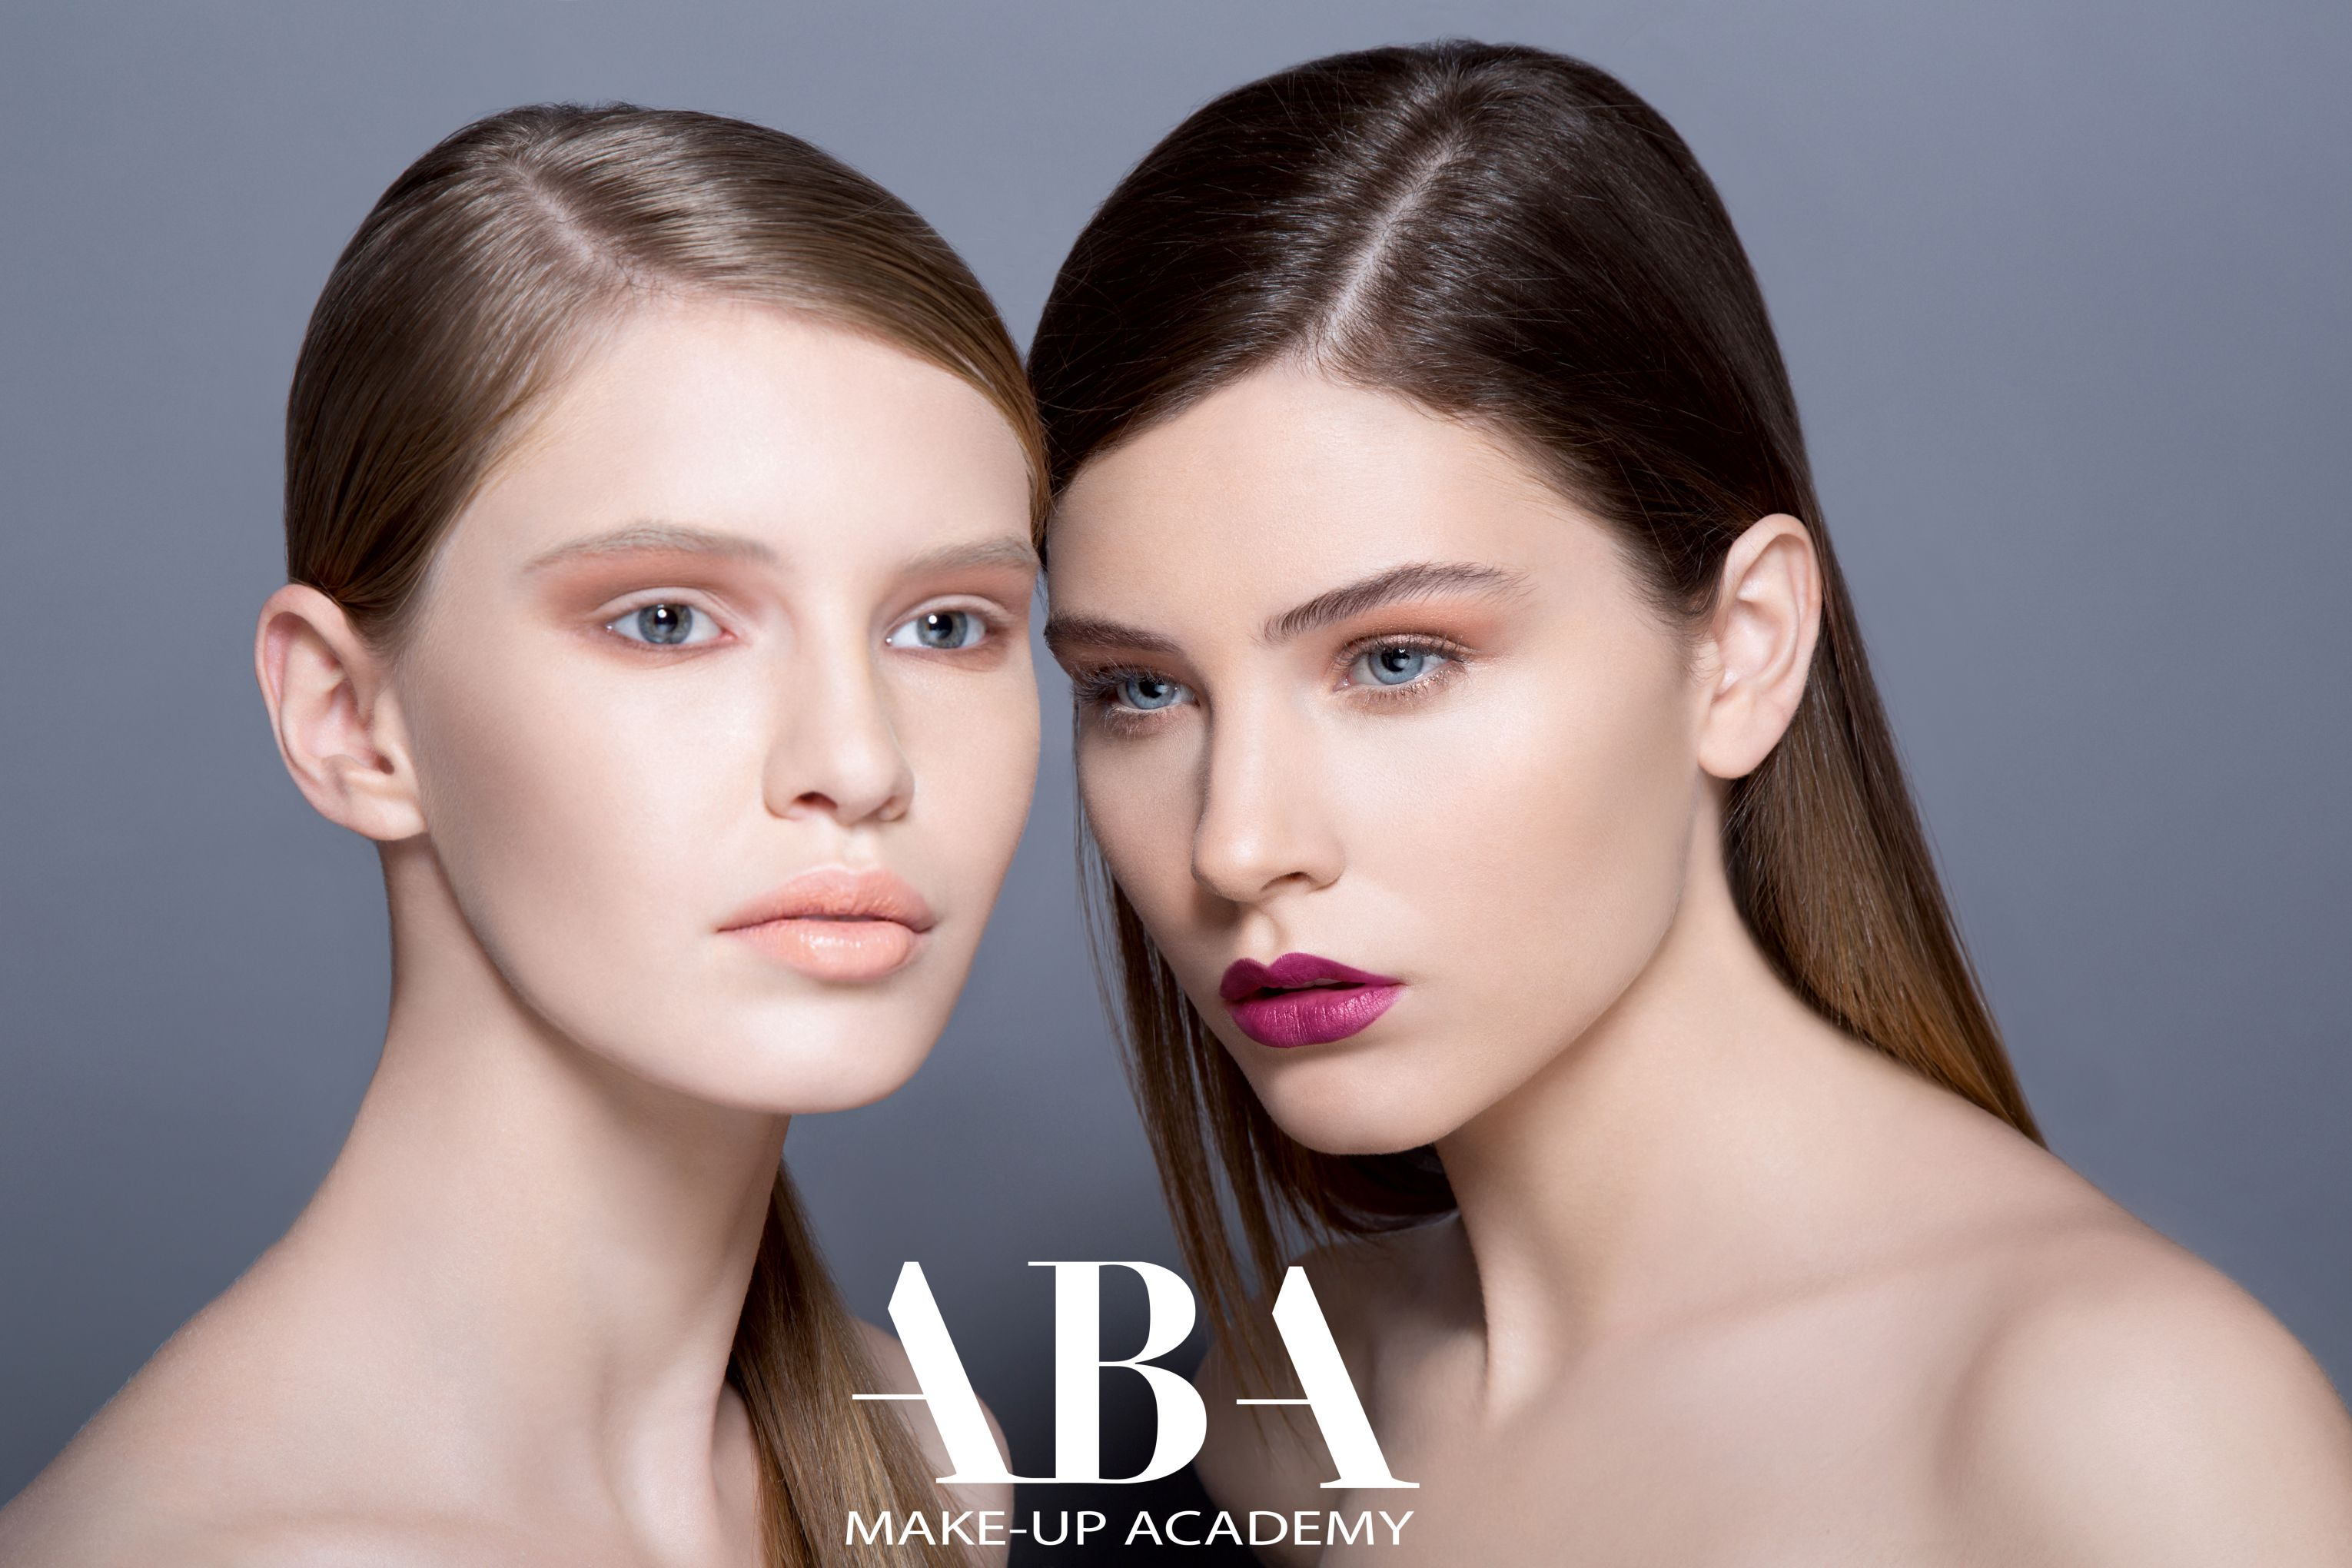 ABA MAKE-UP ACADEMY, discount 20%